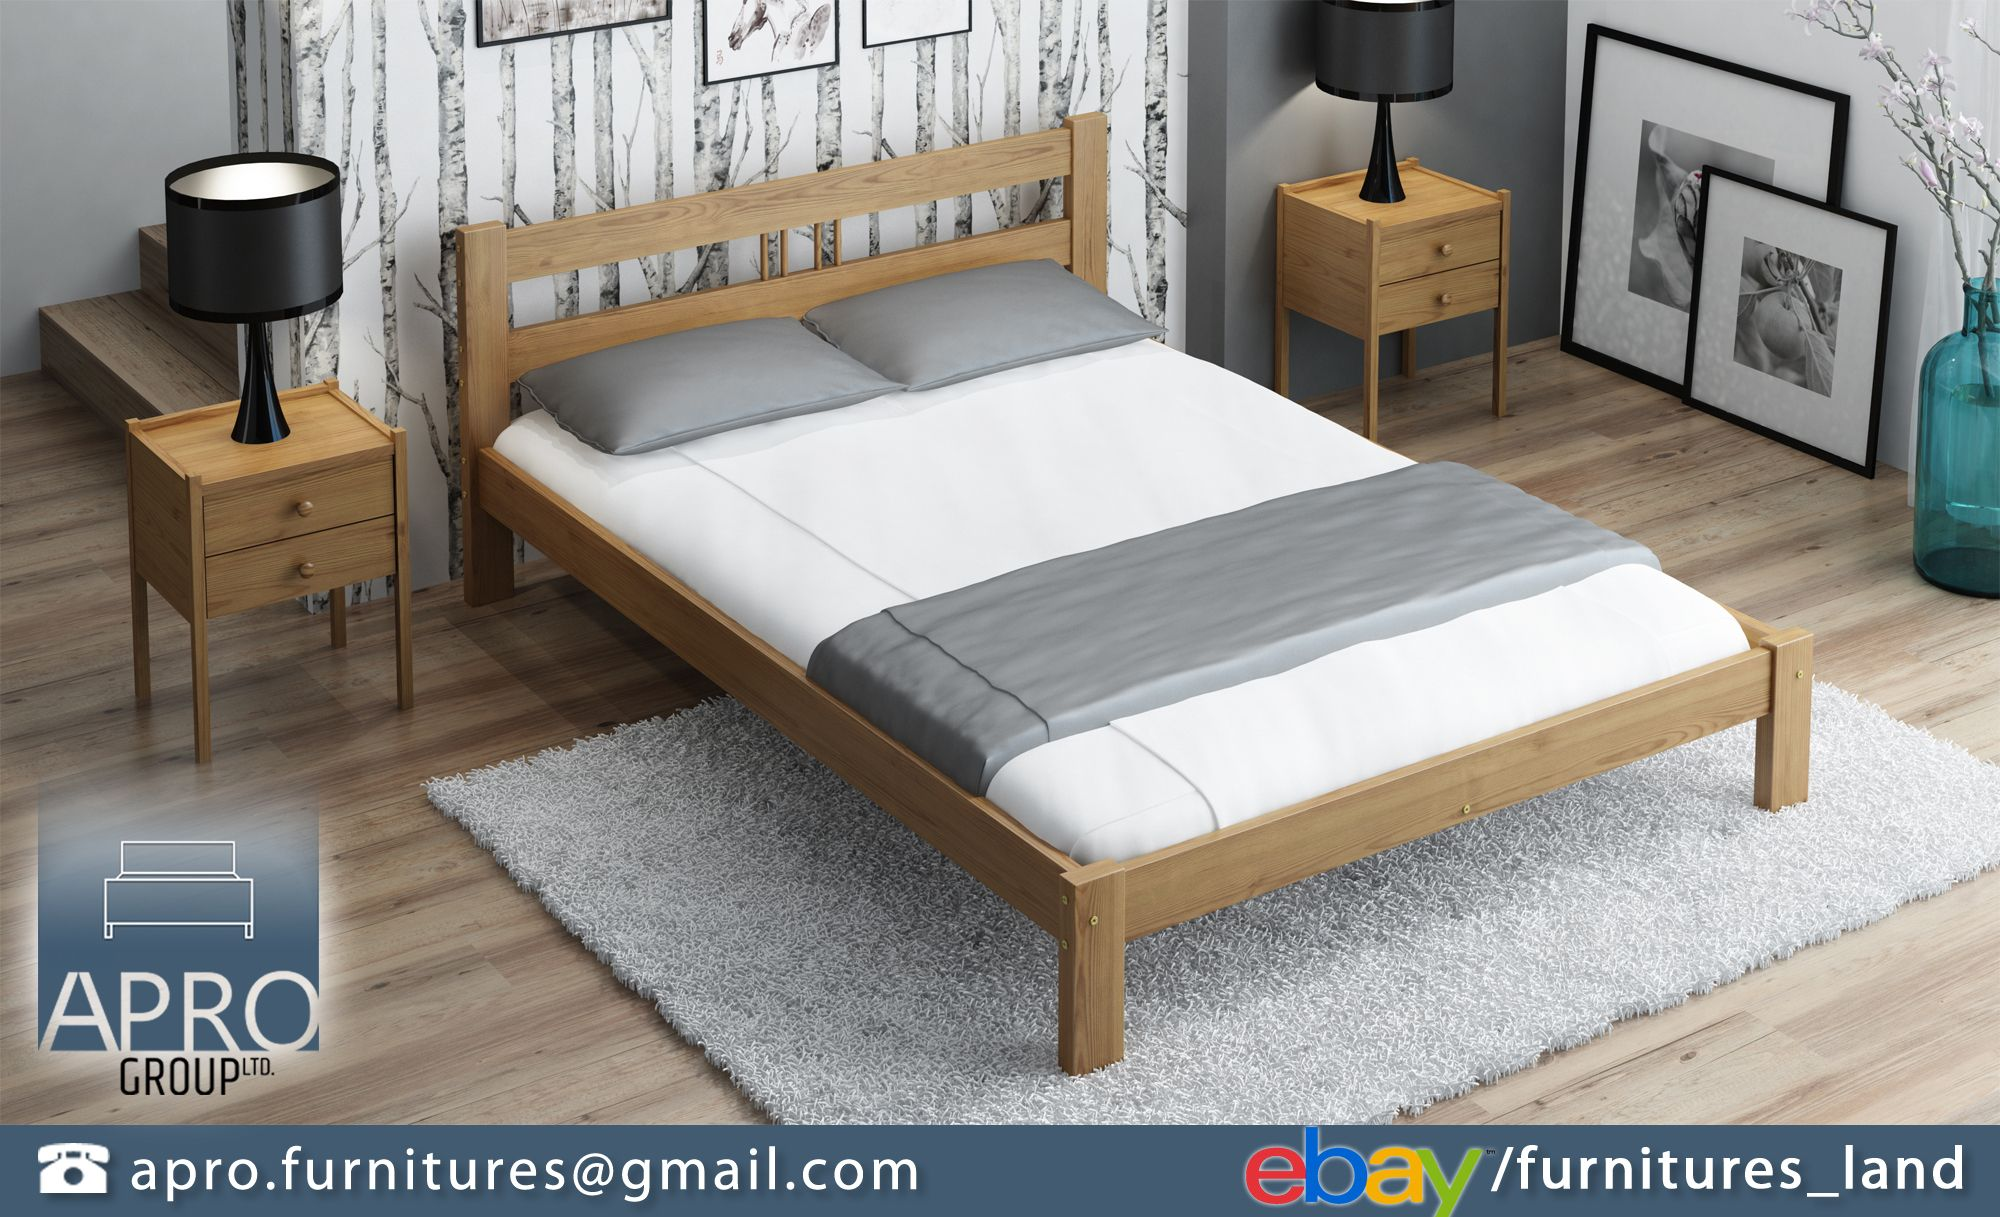 Wooden Pine Oak Wood Bed Frame With Mattress Slats Set 4ft6 Double